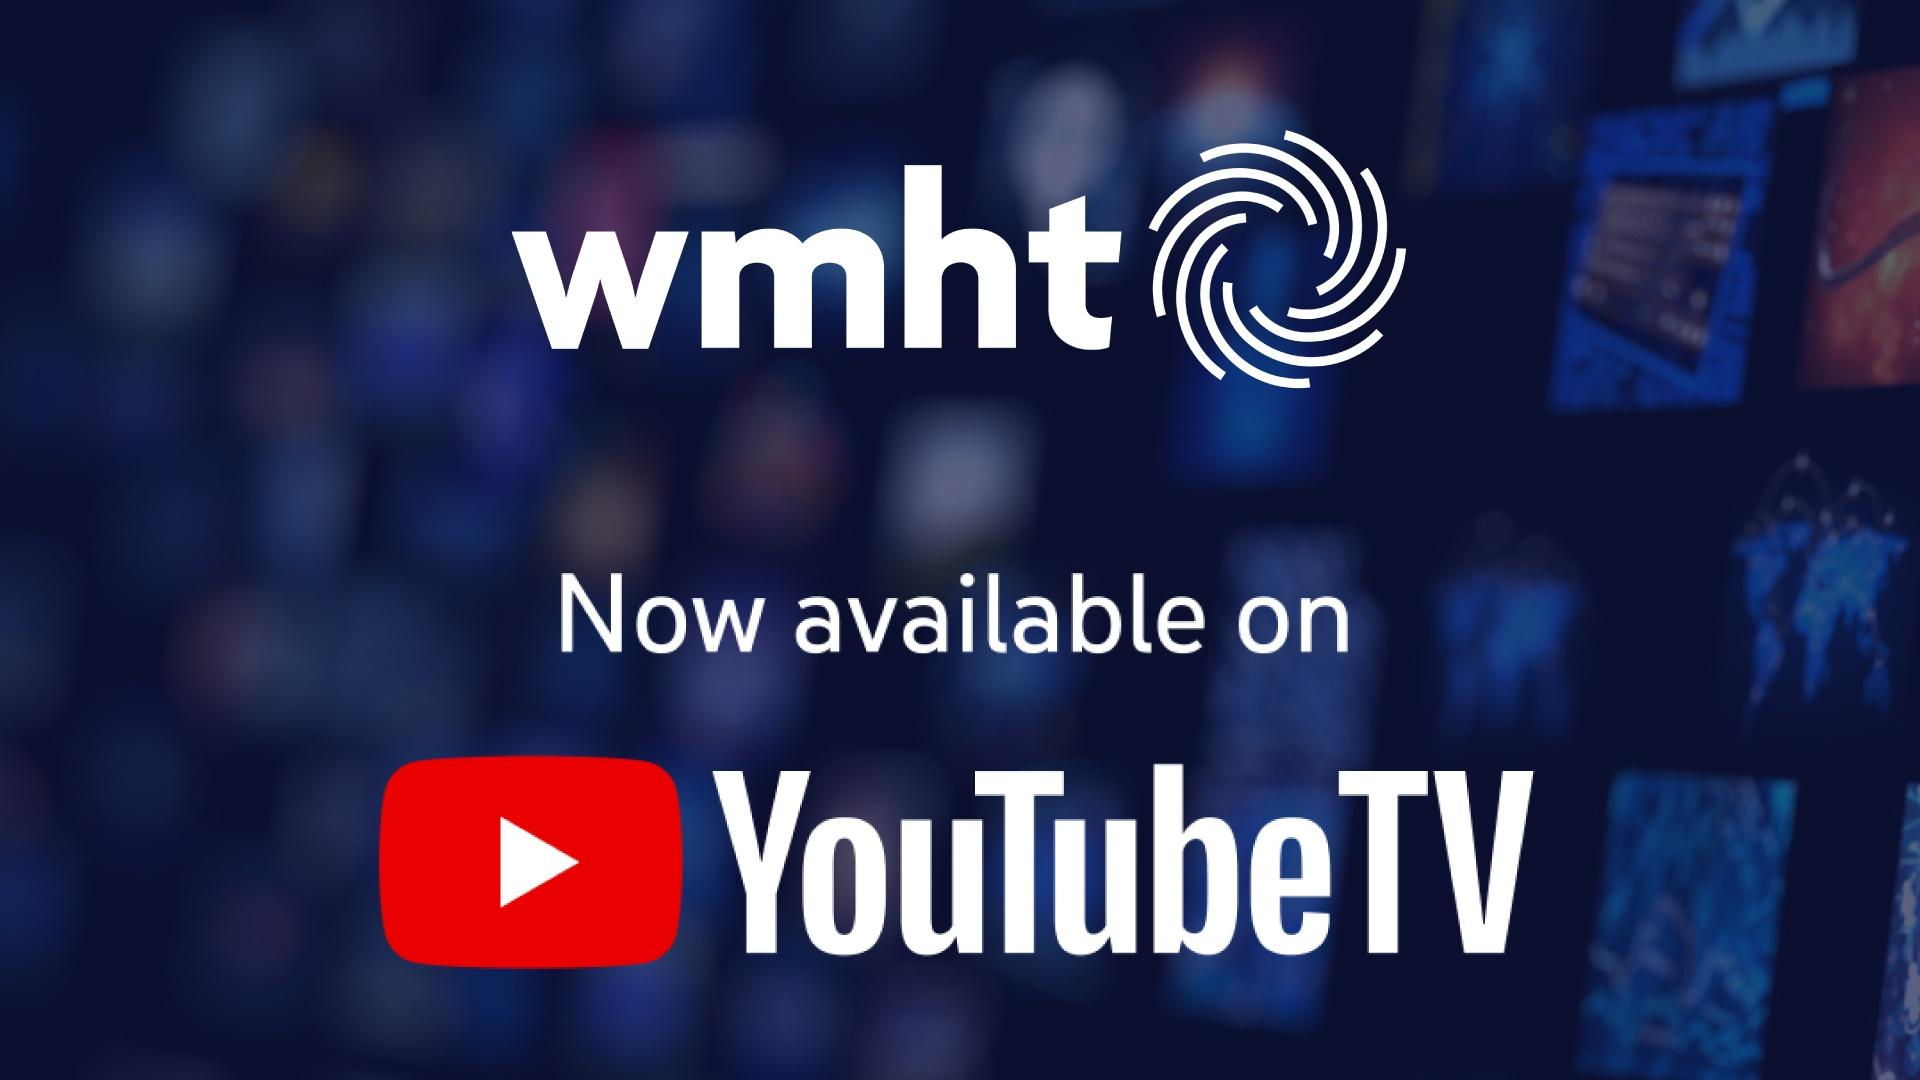 WMHT and YouTube TV Logo on Dark Blue Background